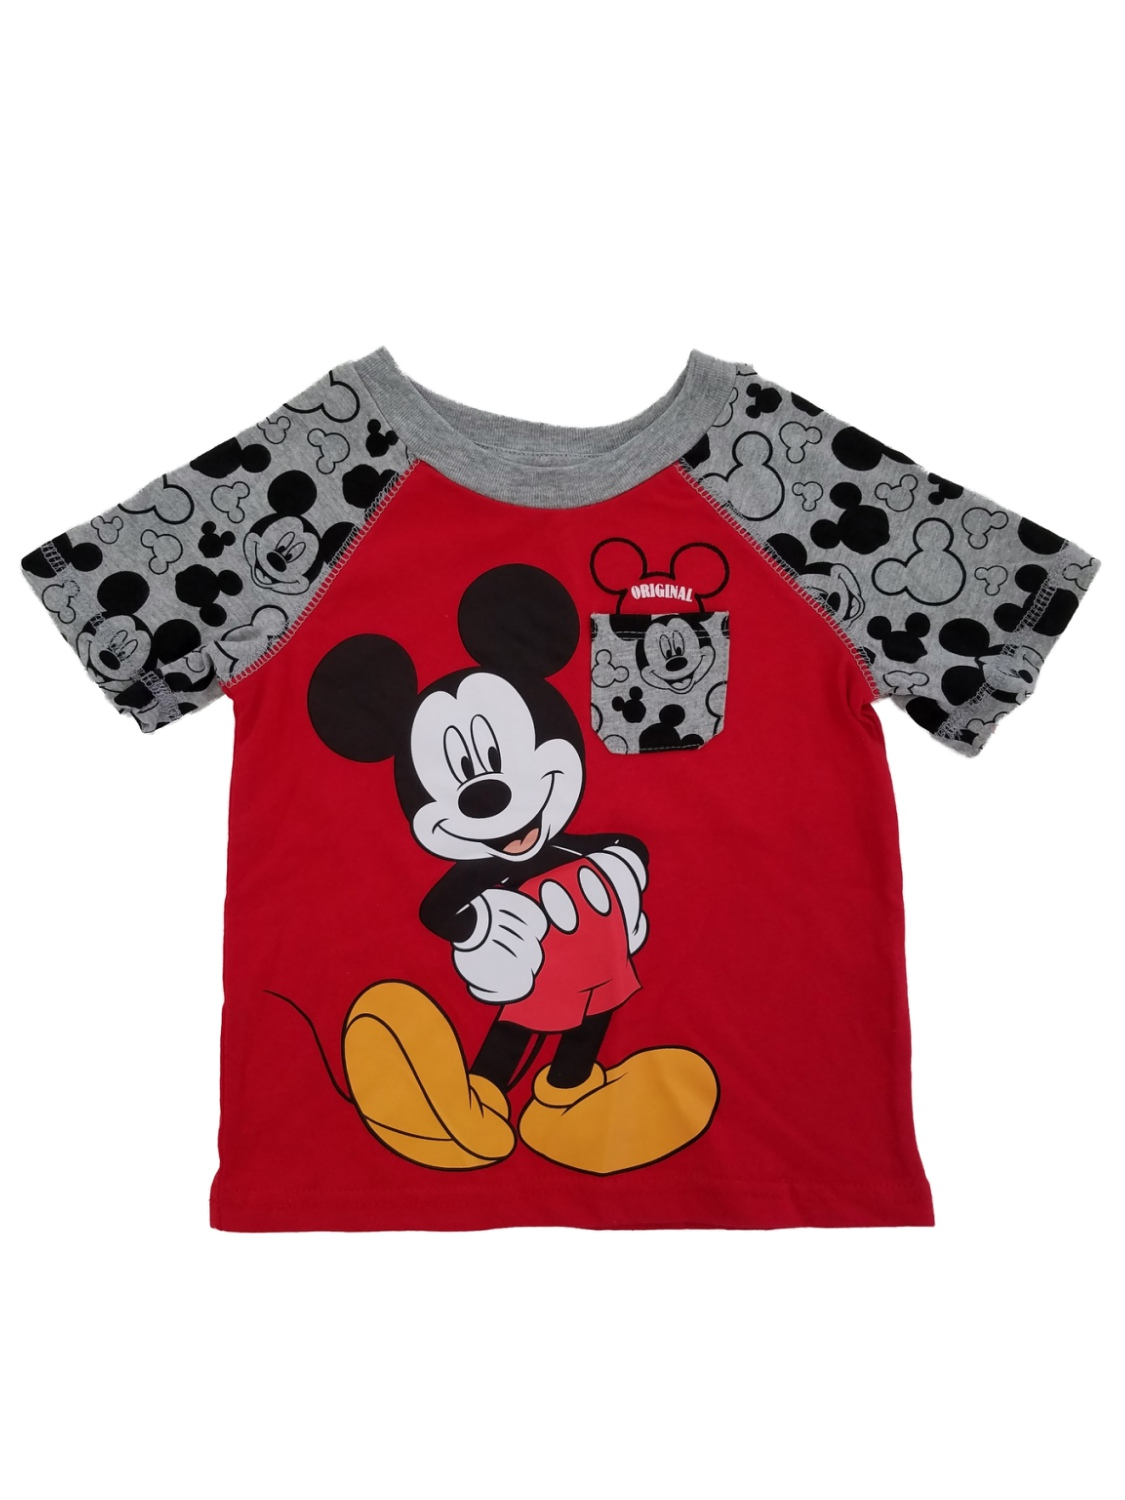 Disney Toddler Boys Red/Gray Original Mickey Mouse Pocket Tee Graphic T-Shirt 2T